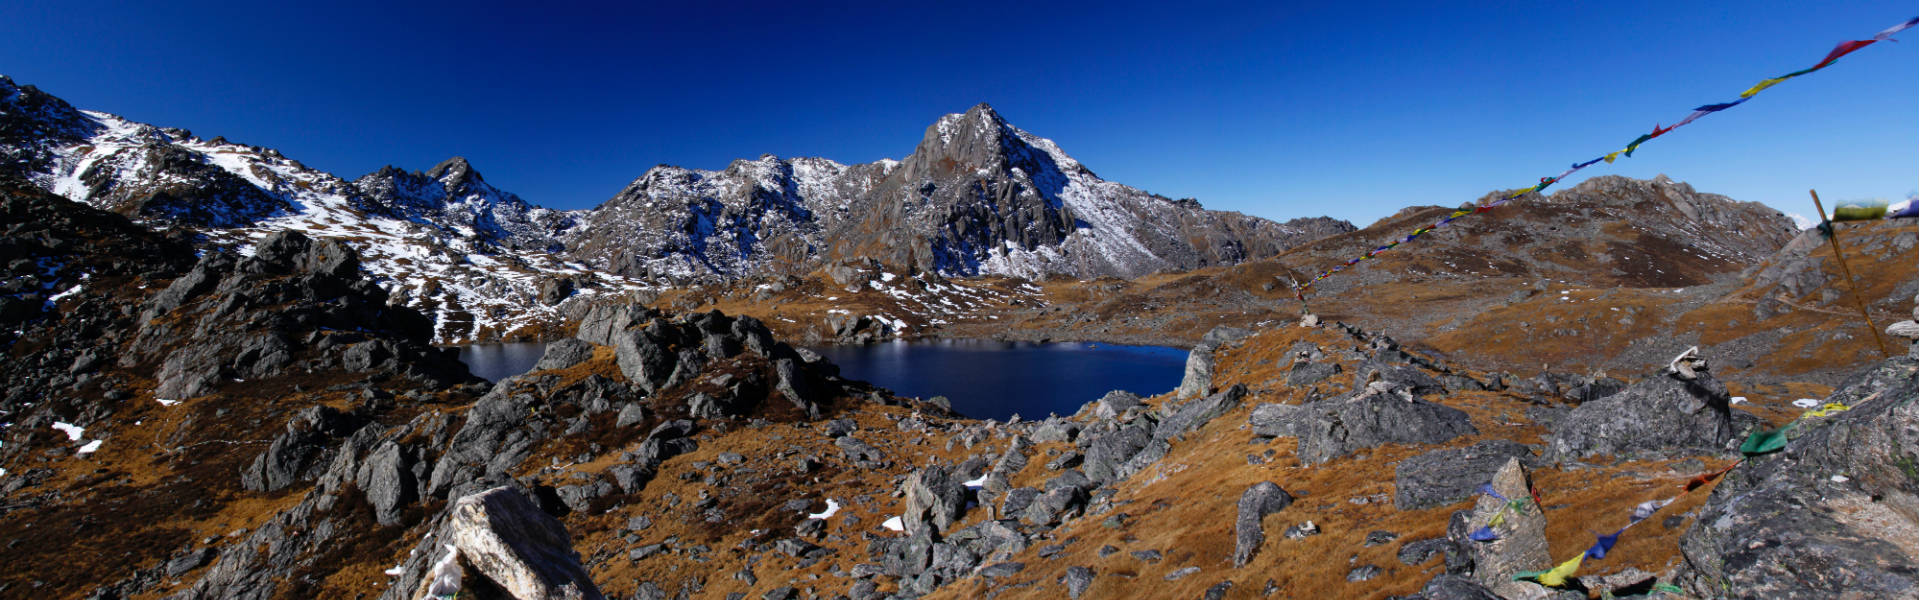 How to choose a trek in Nepal: Gosaikunda Lakes, Langtang Region